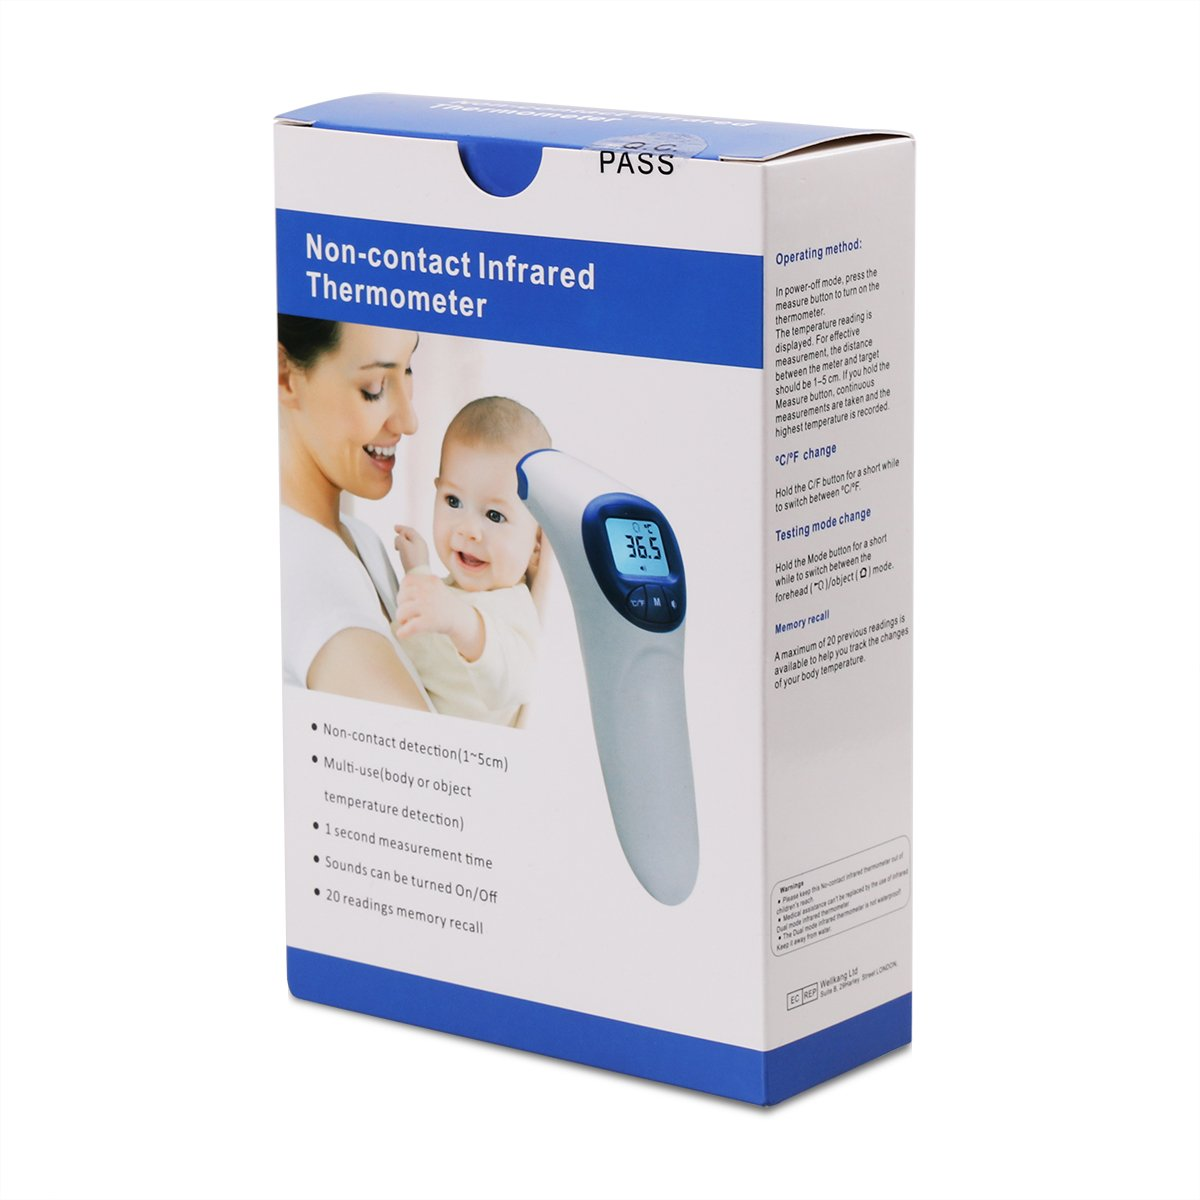 Firhealth Non Contact Infrared Digital Forehead Power Monitor Thermometer For Baby Adult And Elderly 20 Memory Recall Fever Alarm Health Personal